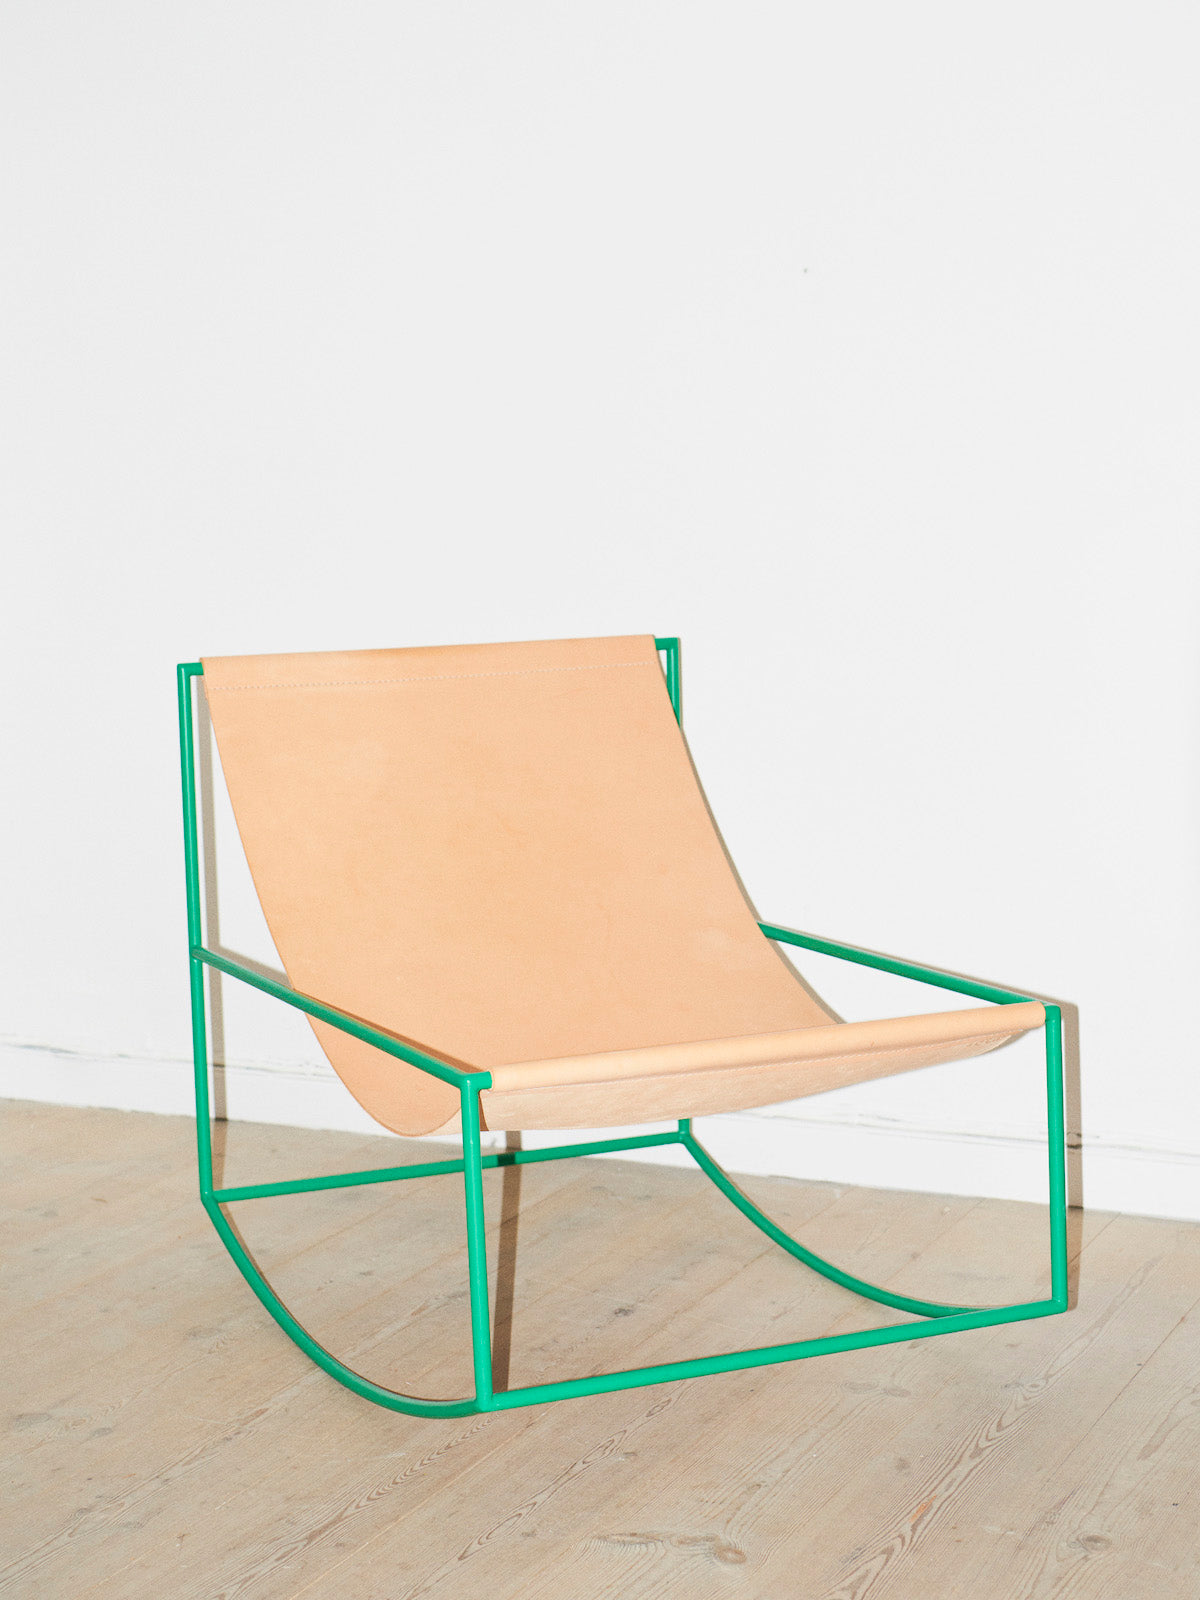 Valerie Objects Rocking chair by Muller van Severen